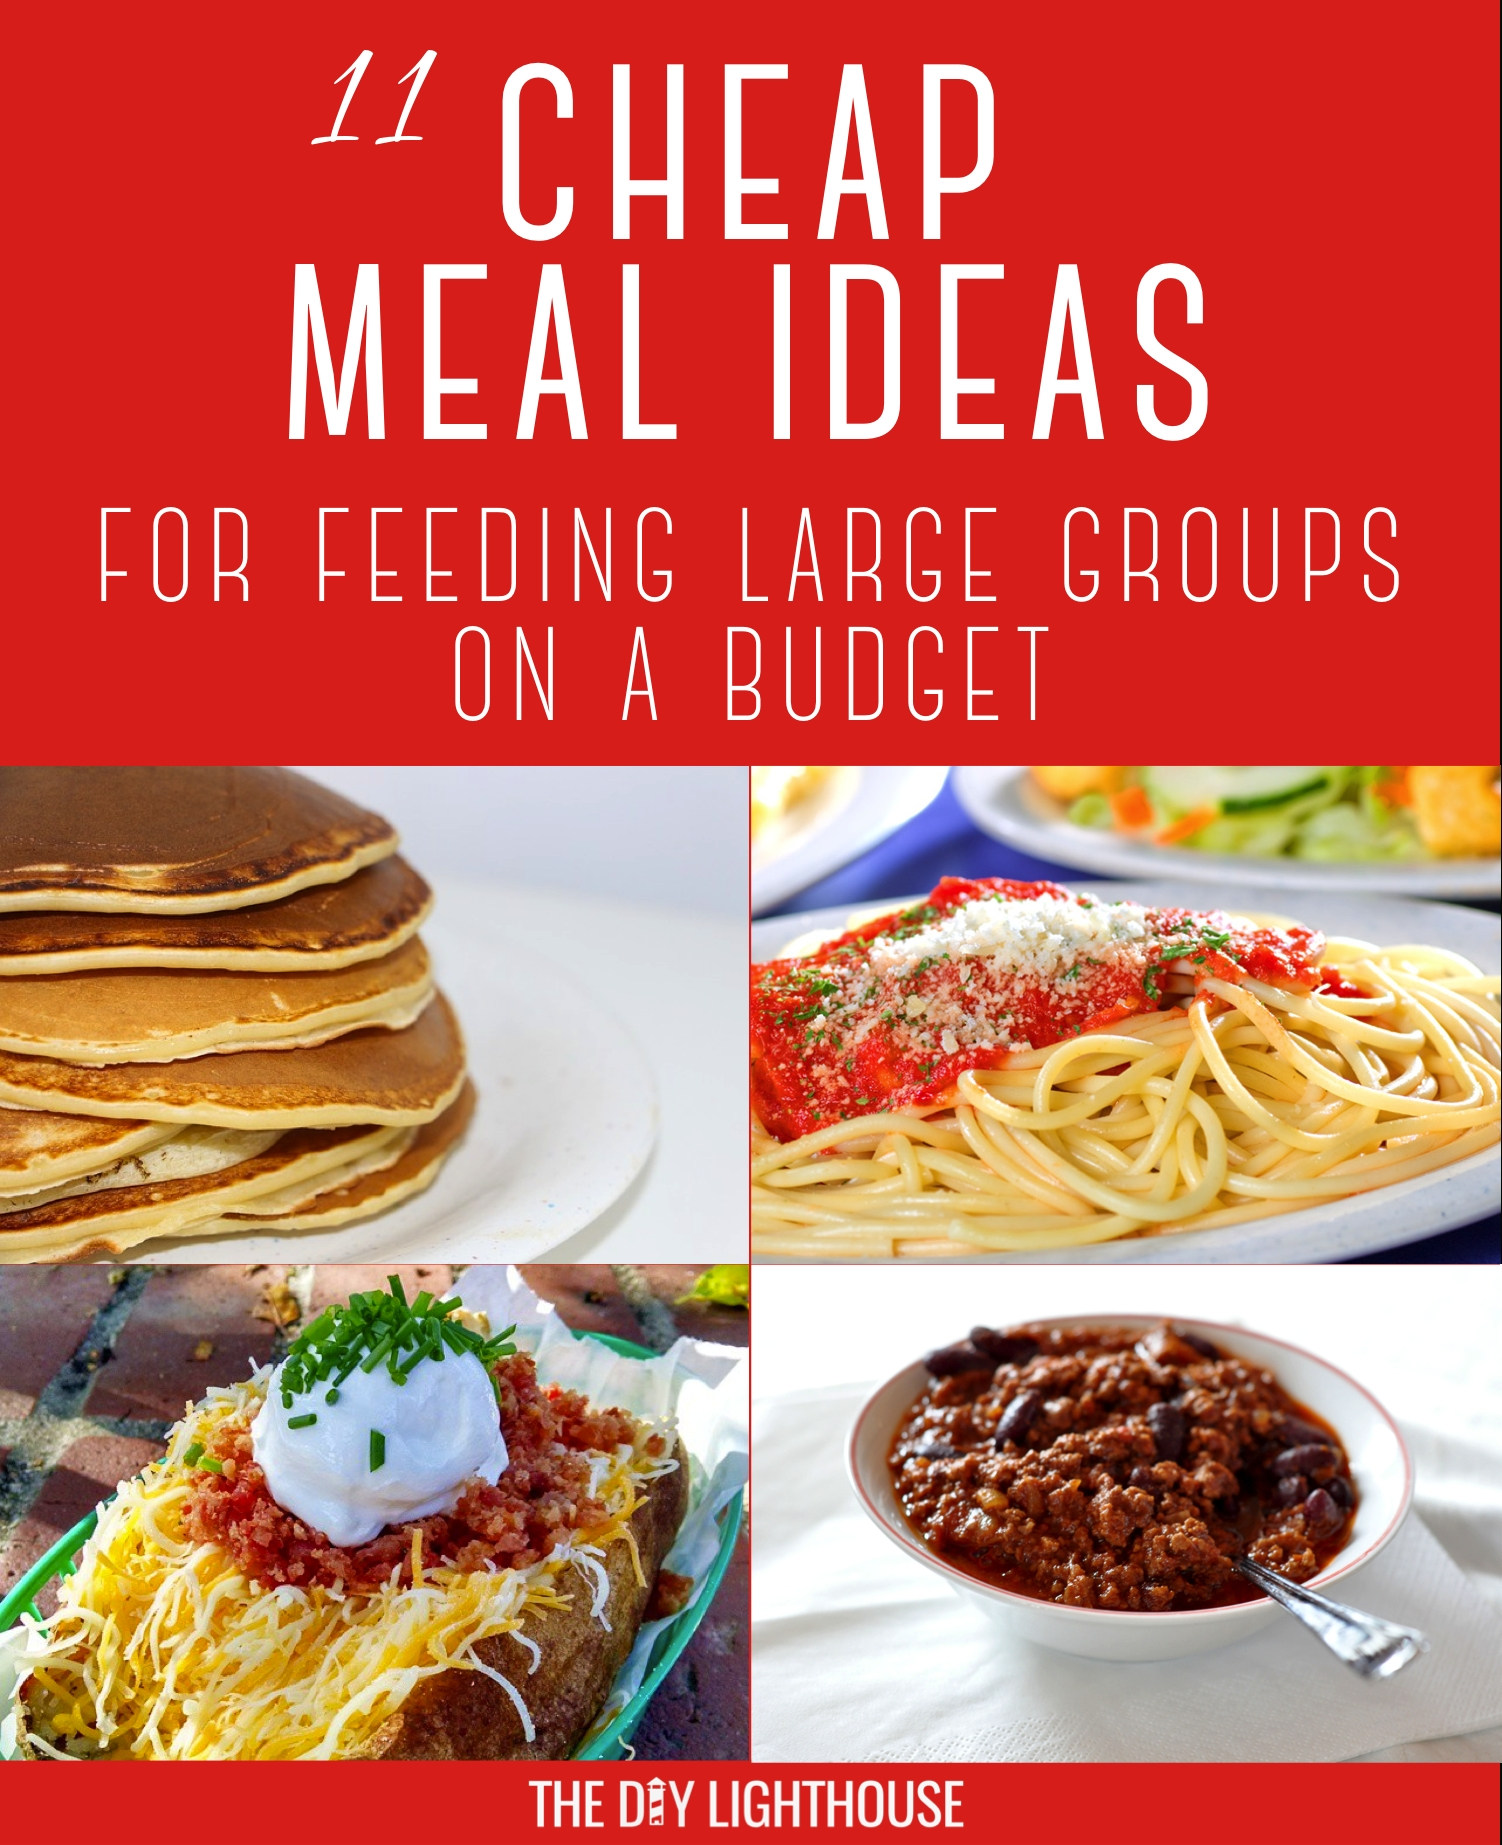 10 Stylish Quick Easy Cheap Dinner Ideas cheap meals for feeding large groups 19 2020